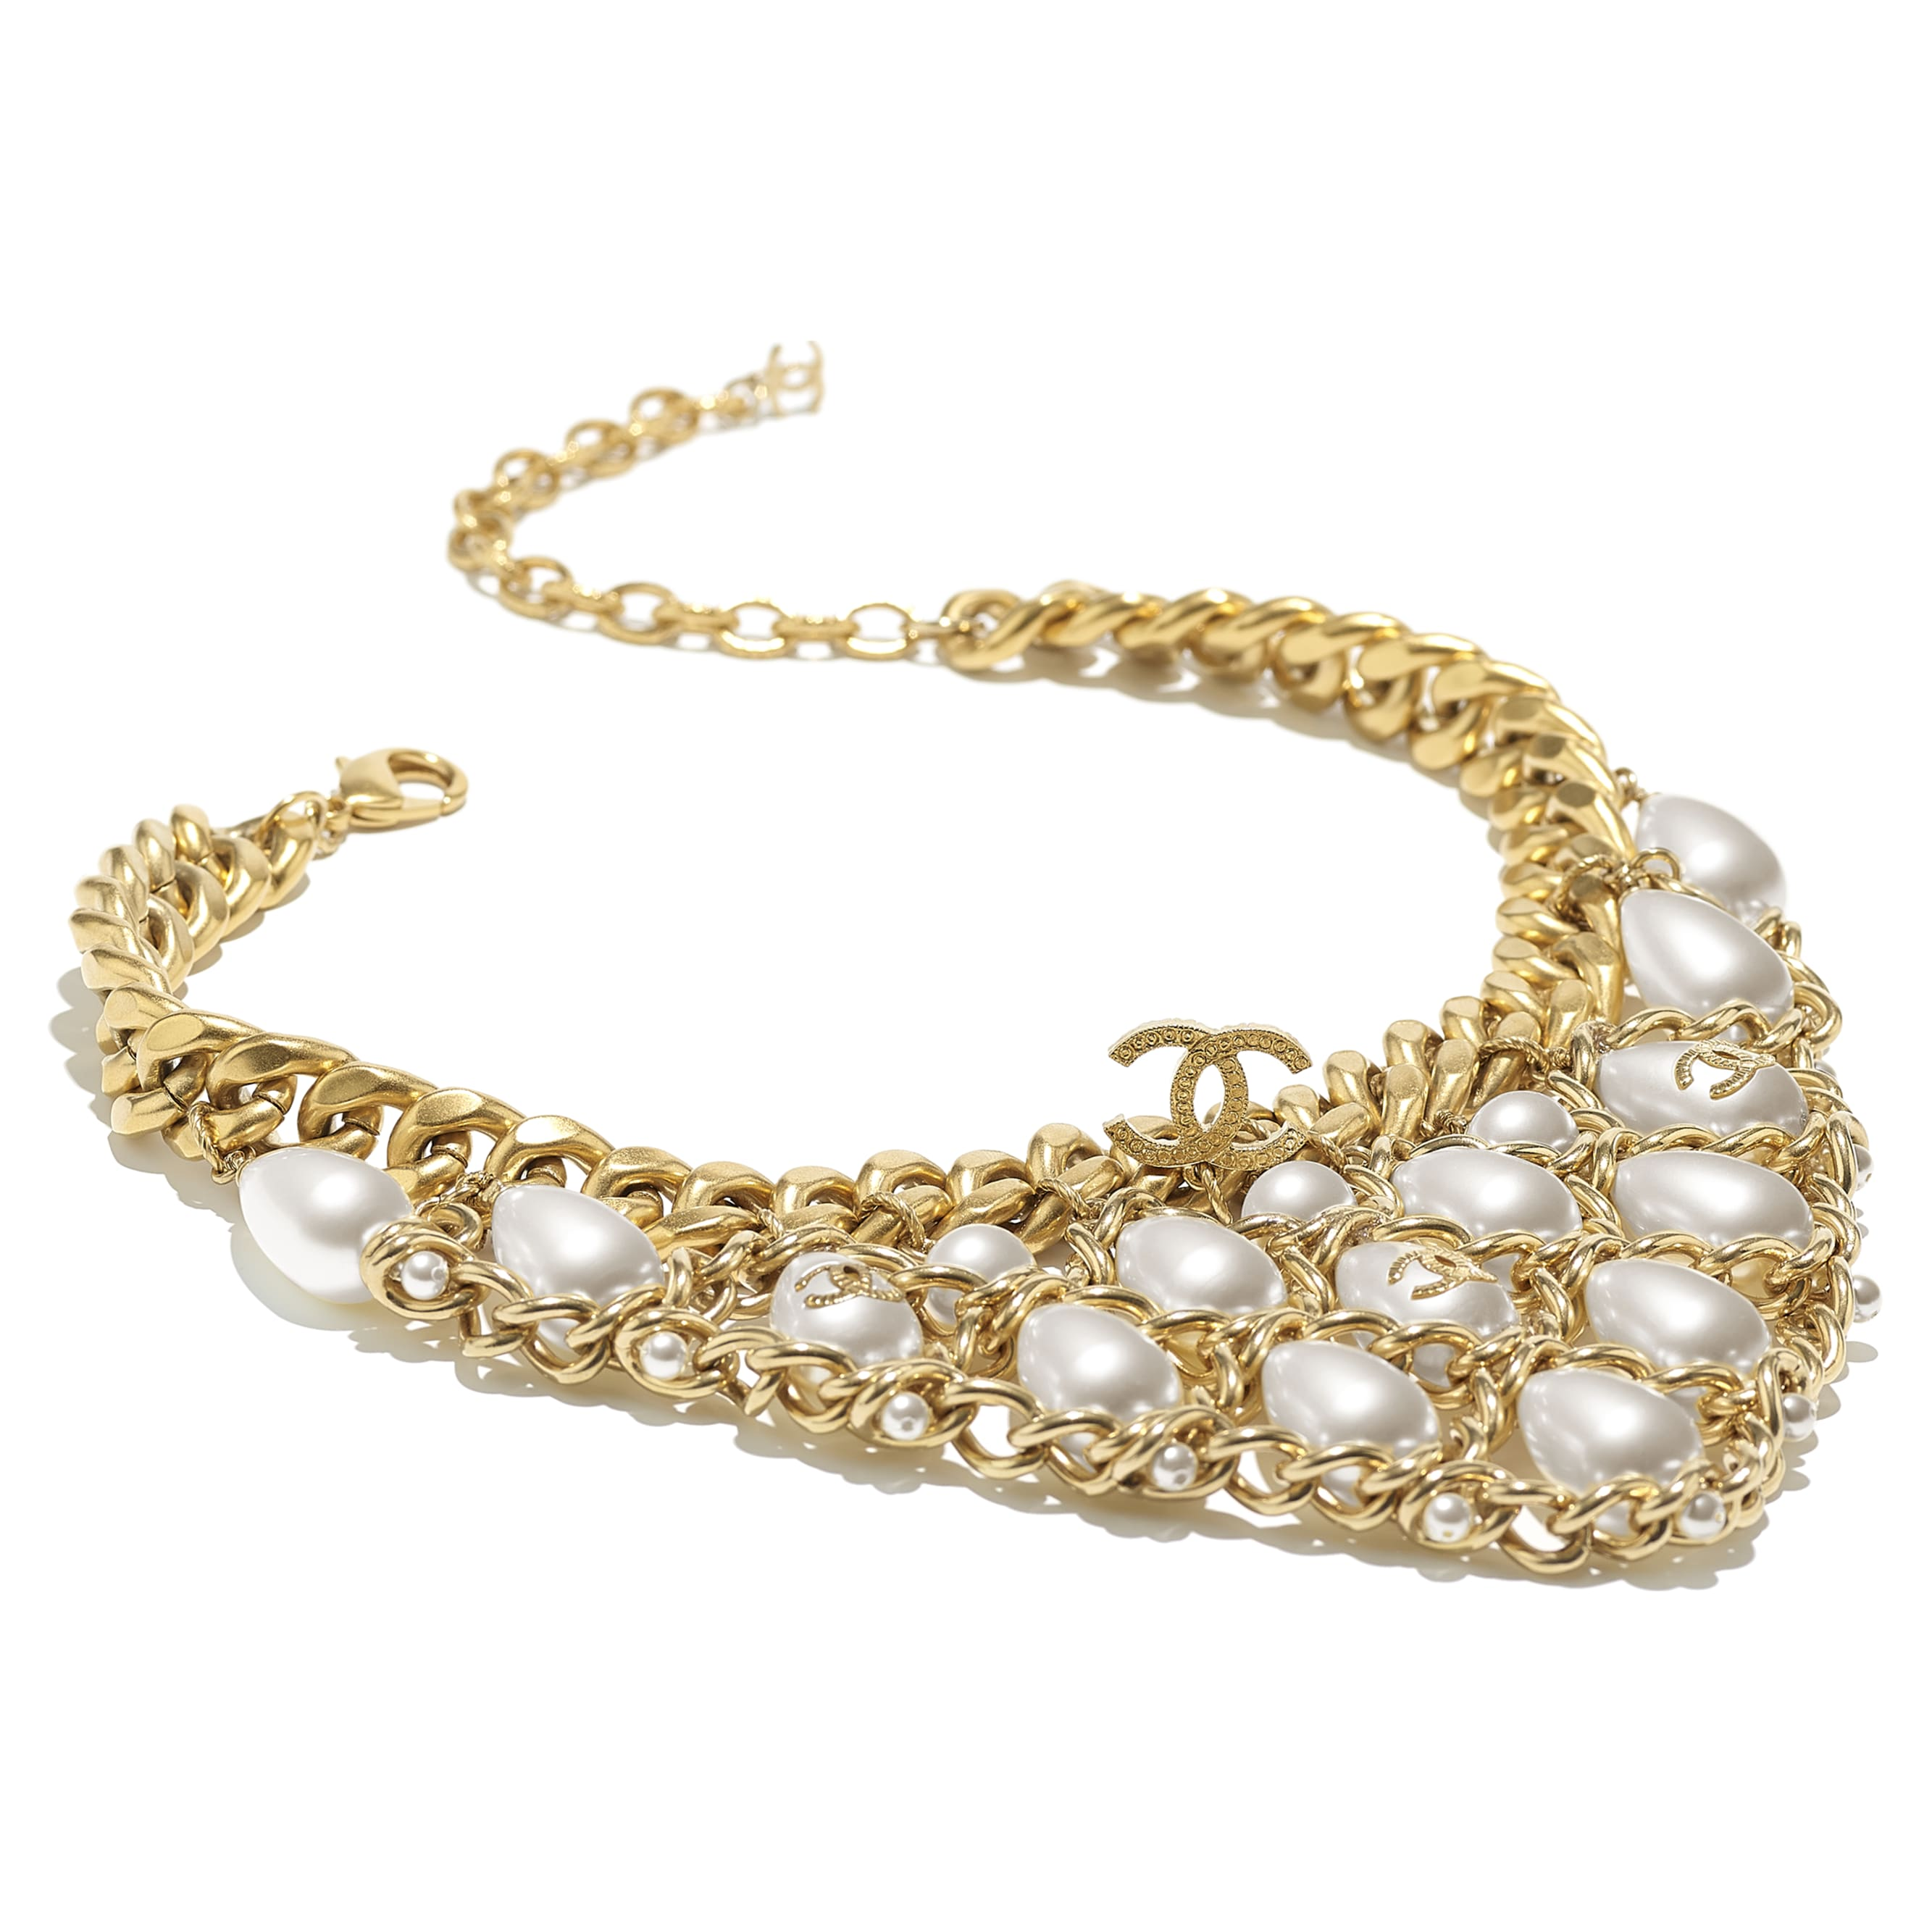 Colar - Gold, Pearly White & Crystal - Metal, Glass Pearls, Imitation Pearls & Strass - CHANEL - Vista alternativa - ver a versão em tamanho standard